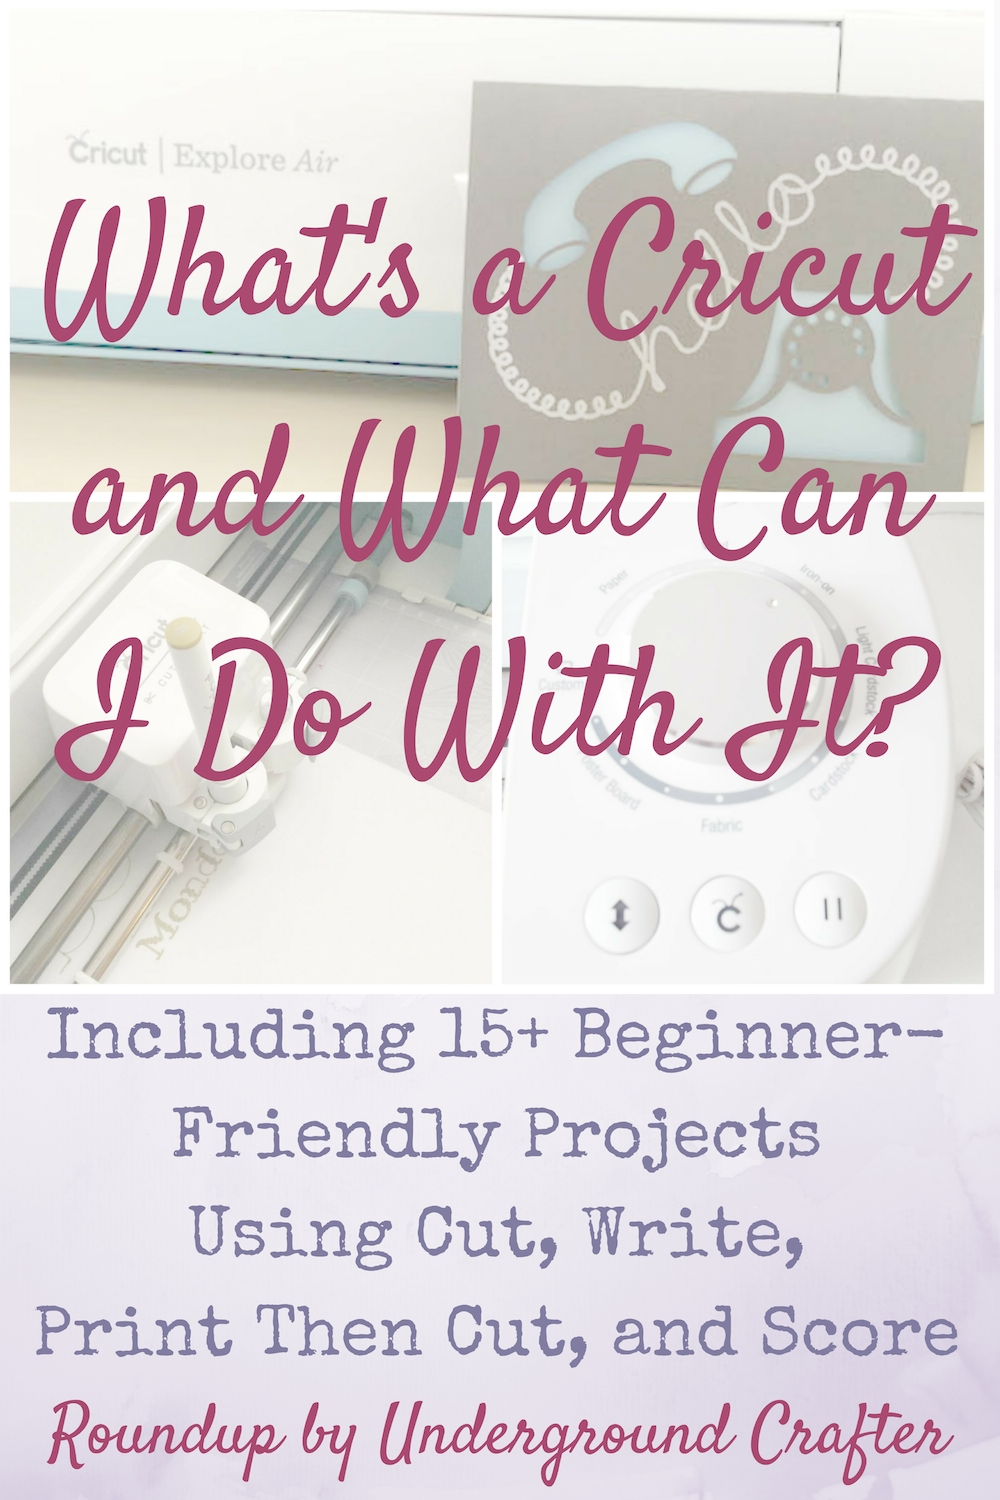 Cricut Basics: So, What's a Cricut and What Can I Do With It